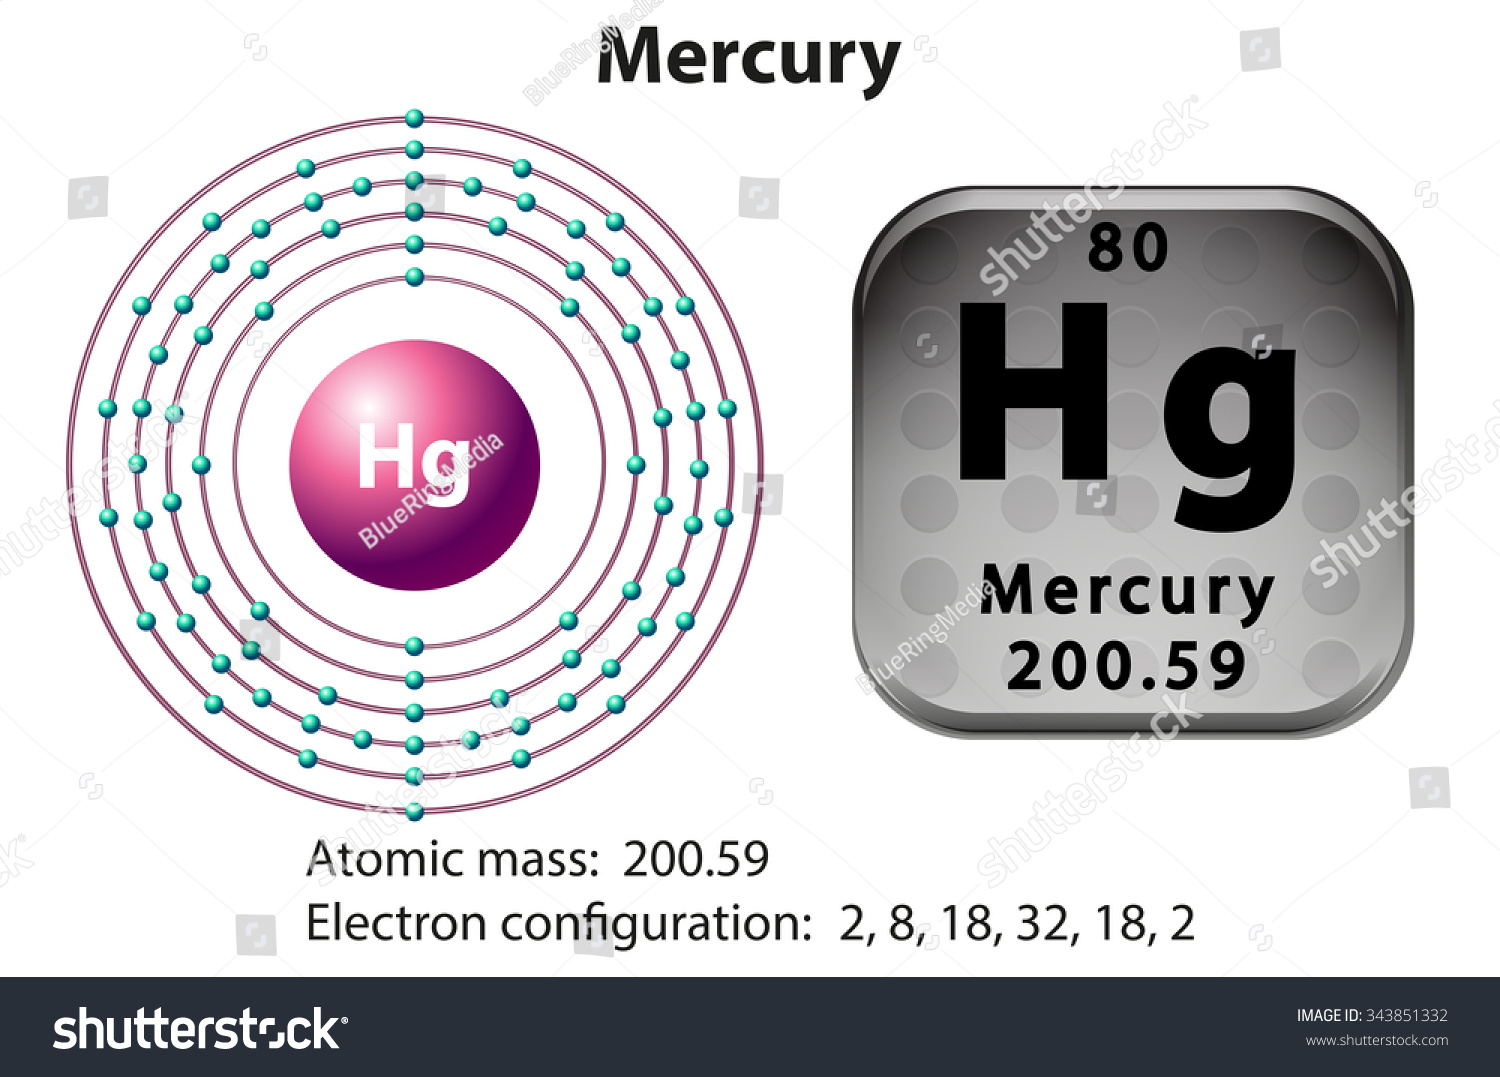 Symbol electron diagram mercury illustration stock vector symbol electron diagram mercury illustration stock vector 343851332 shutterstock buycottarizona Gallery